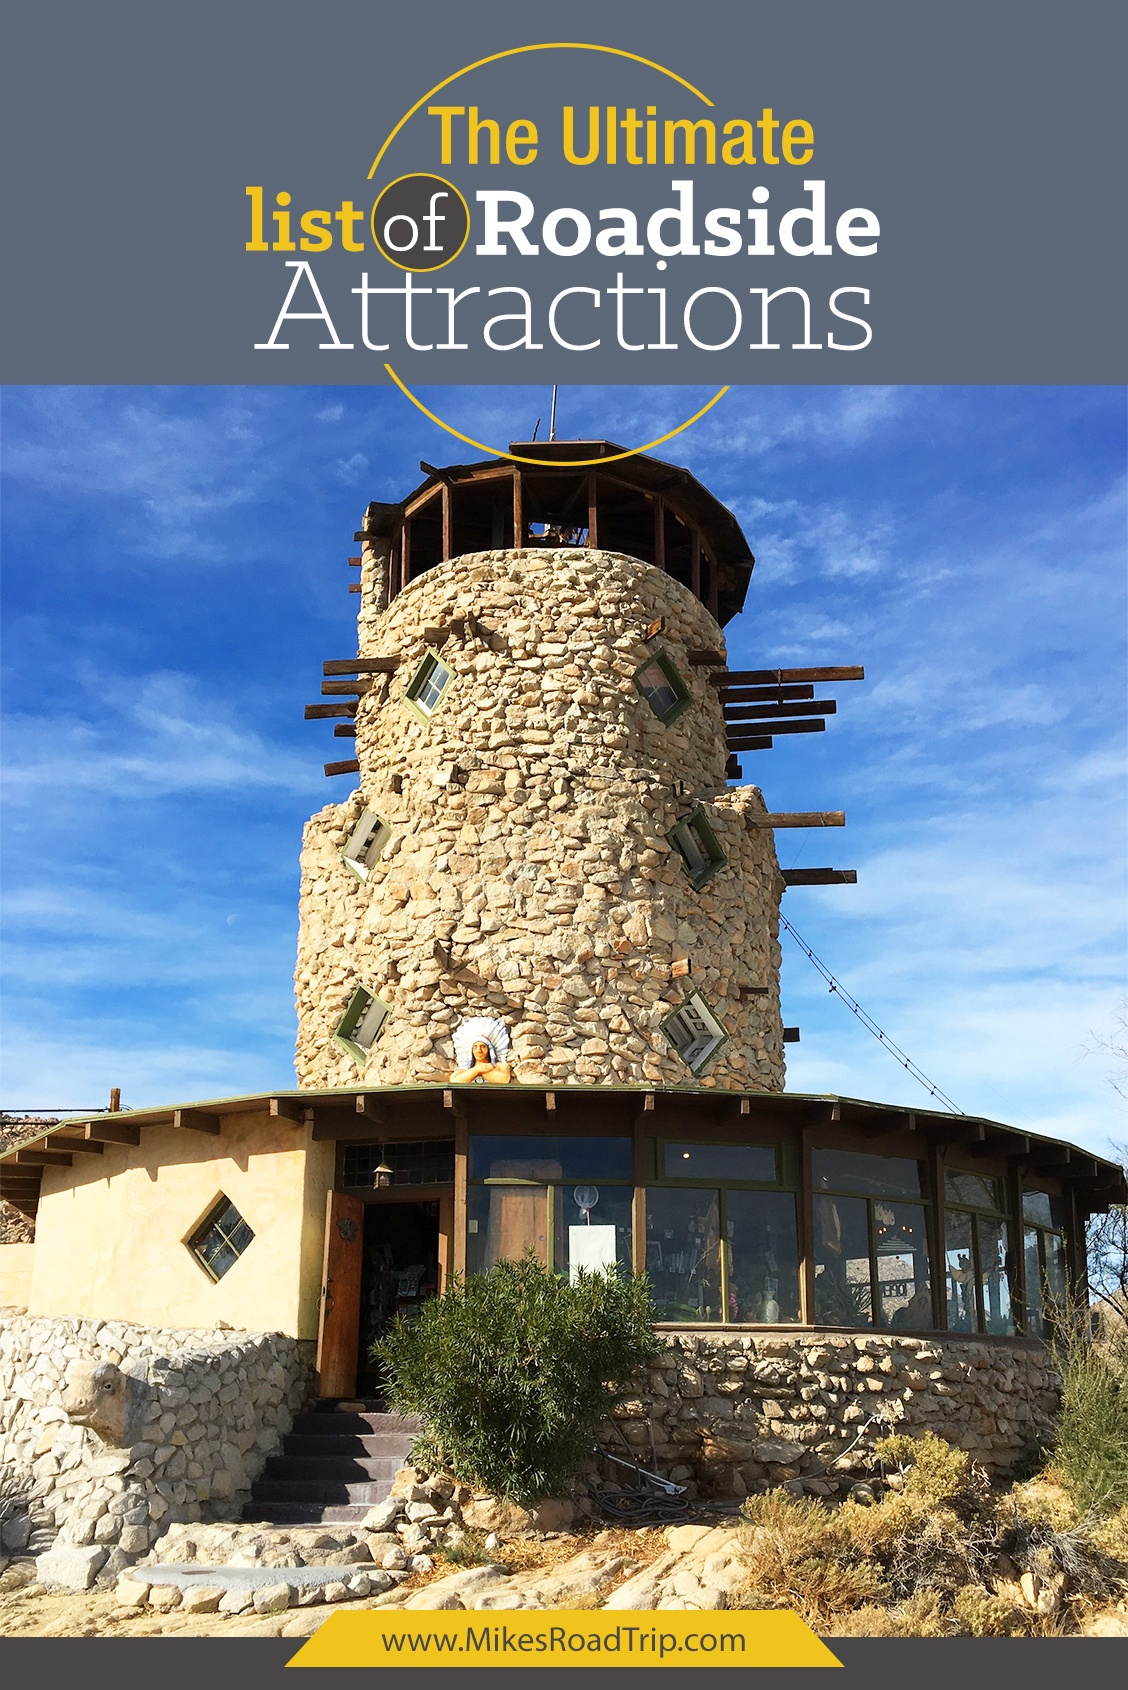 Ultimate list of roadside attractions from around the world by MikesRoadTrip.com